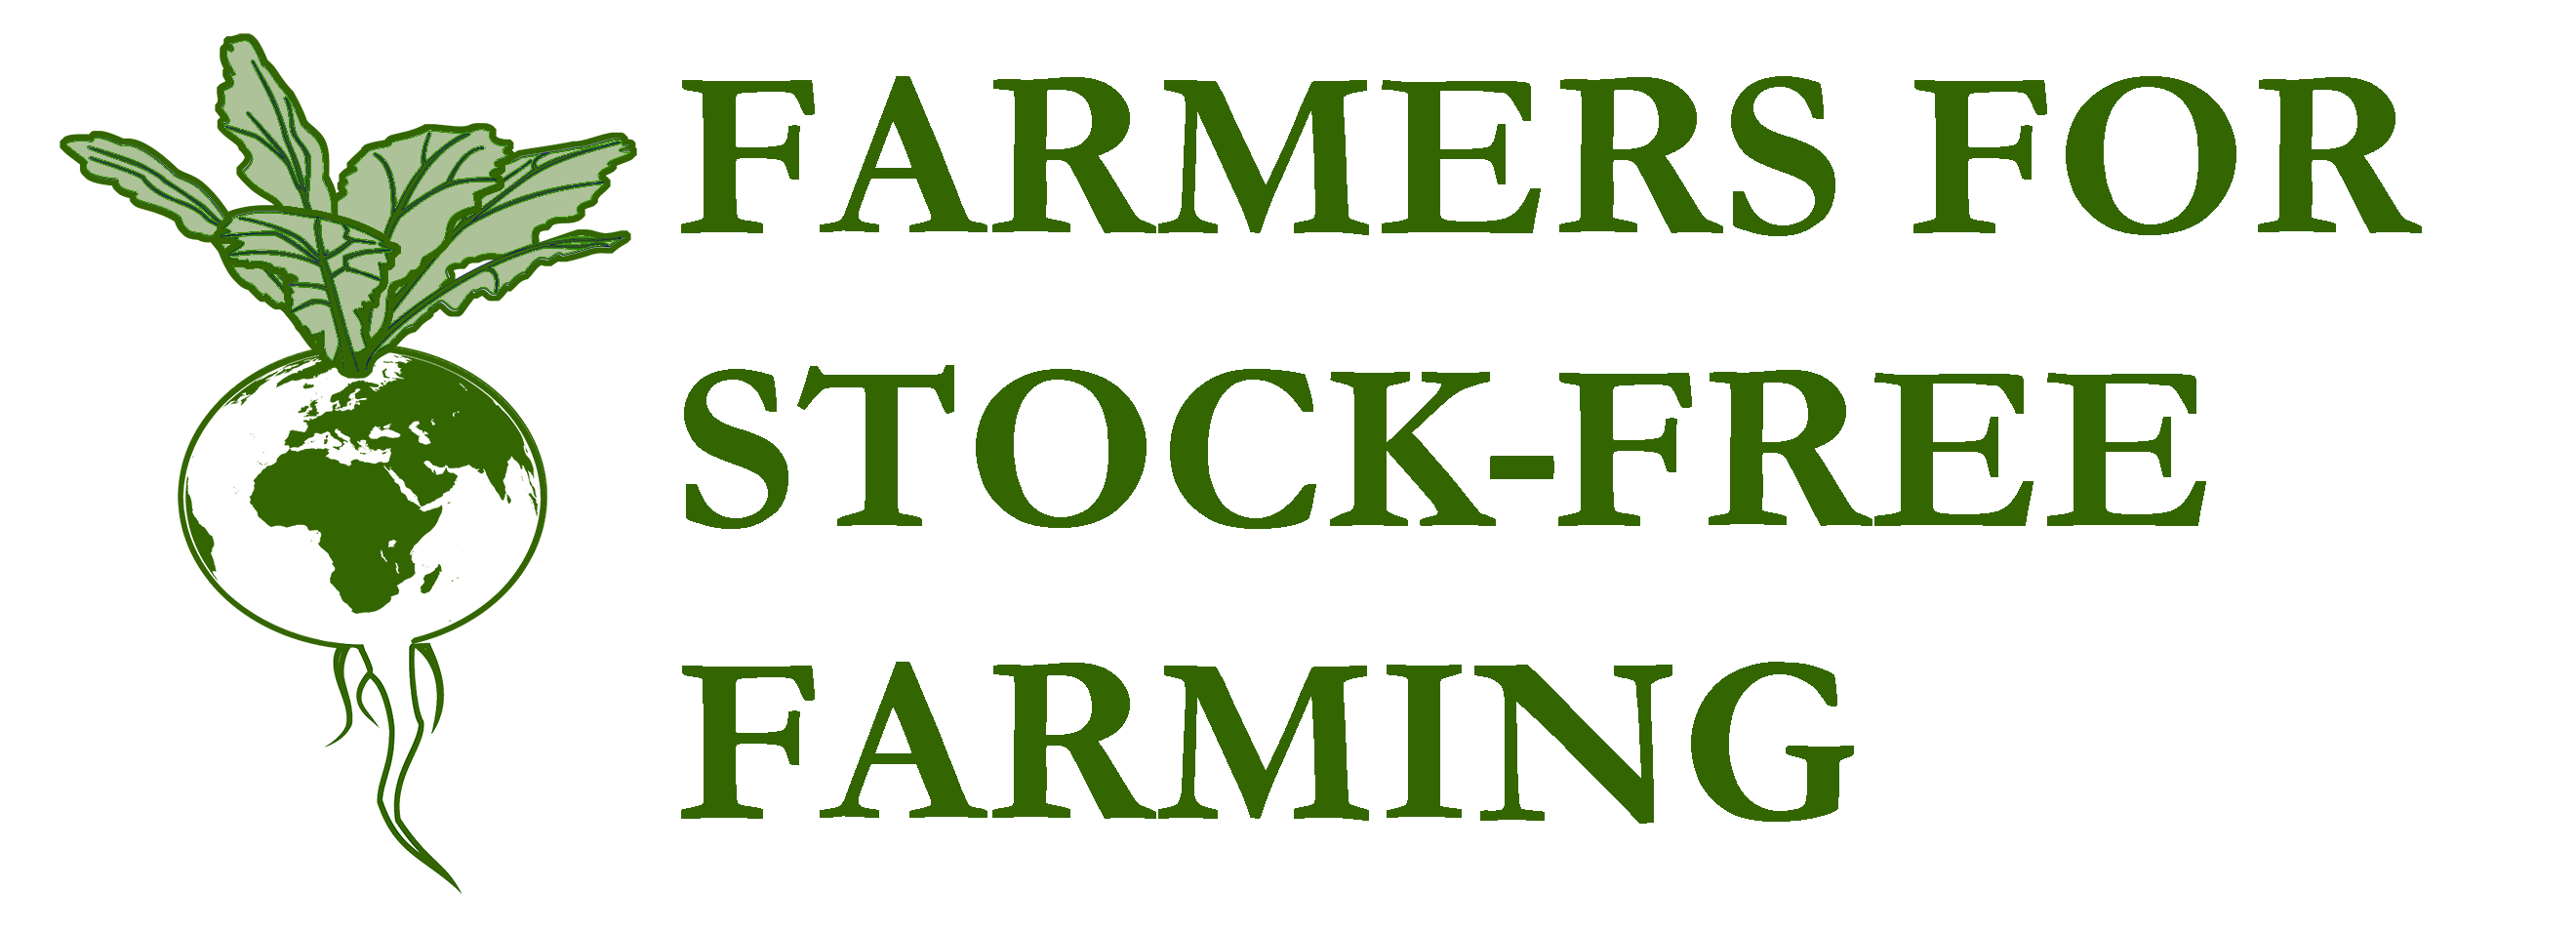 Farmers For Stock-Free Farming